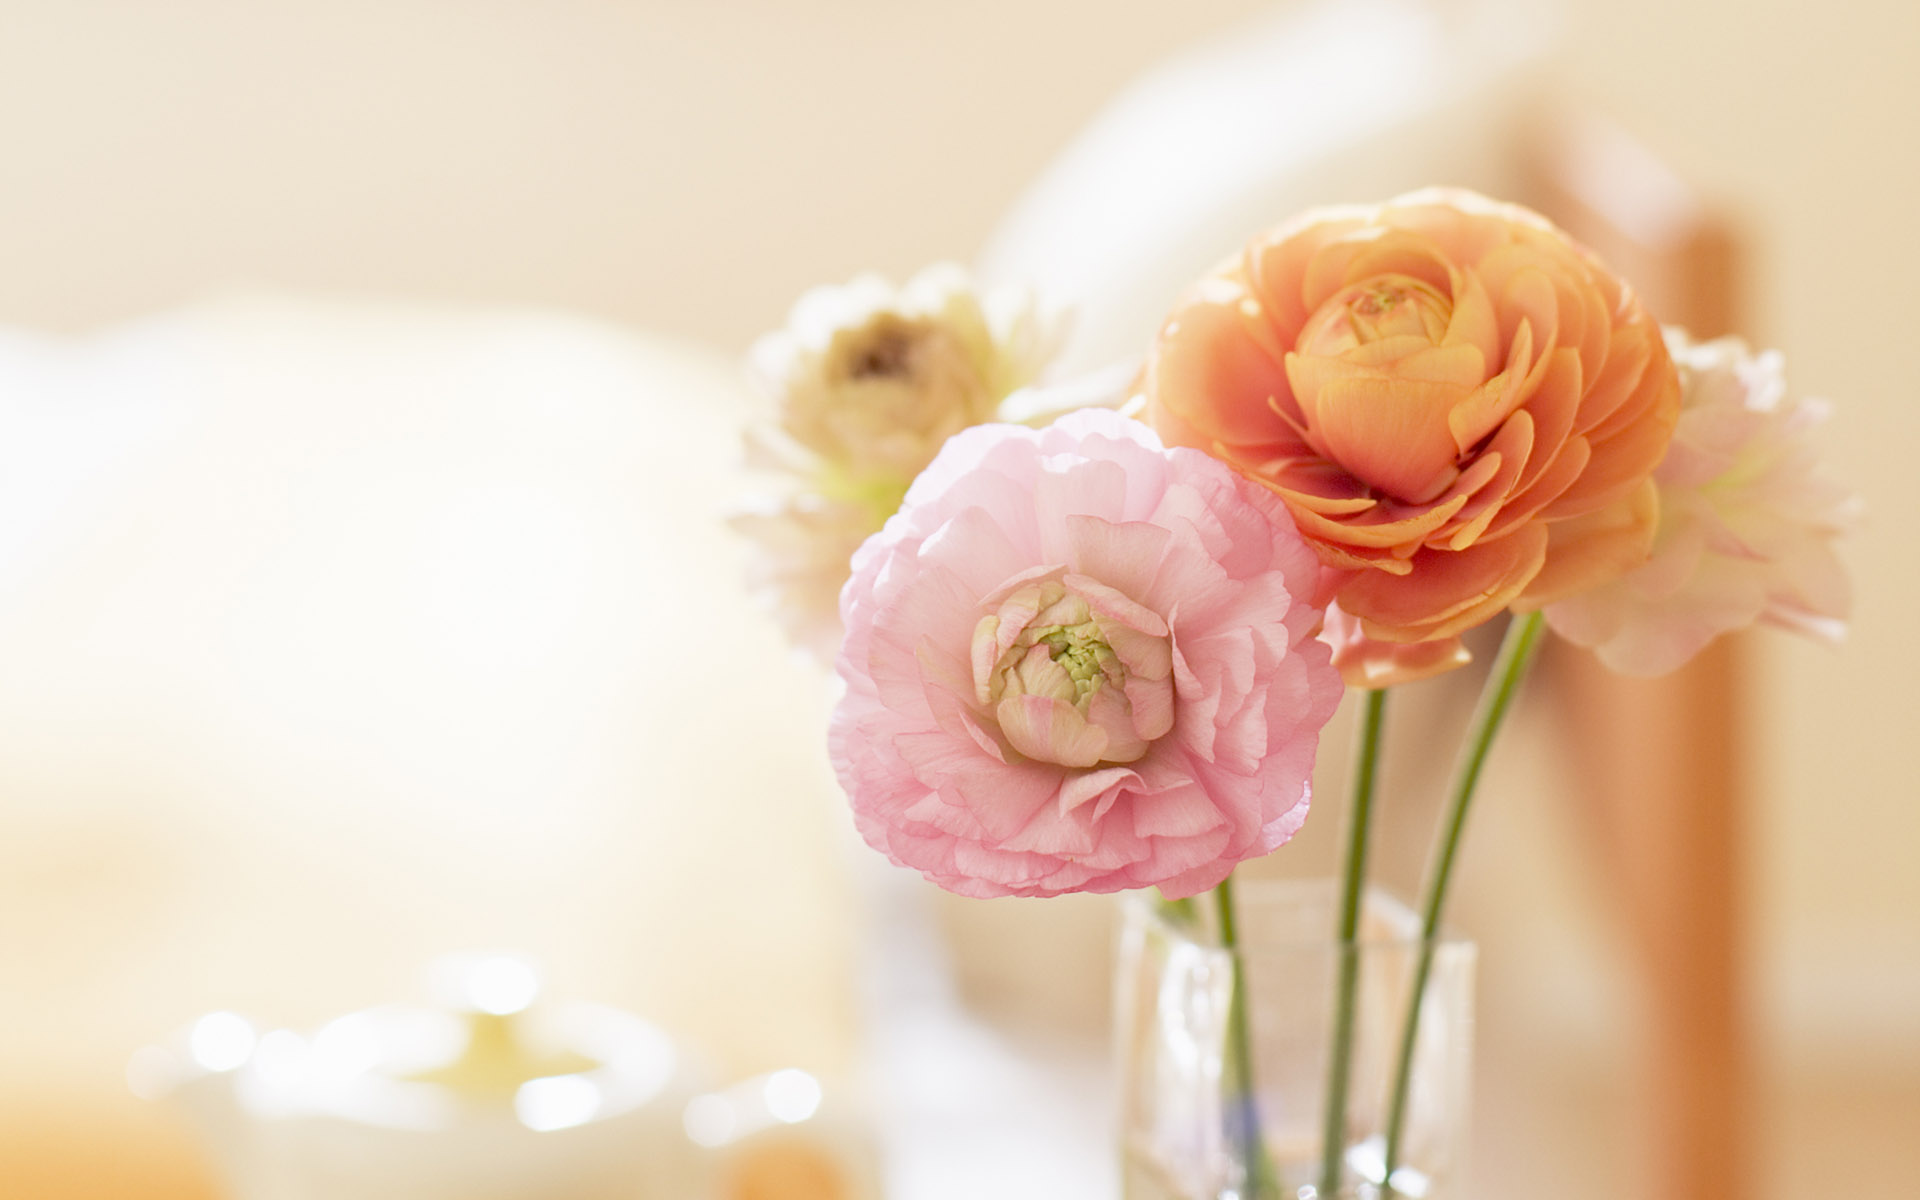 flowers wallpapers for windows 7